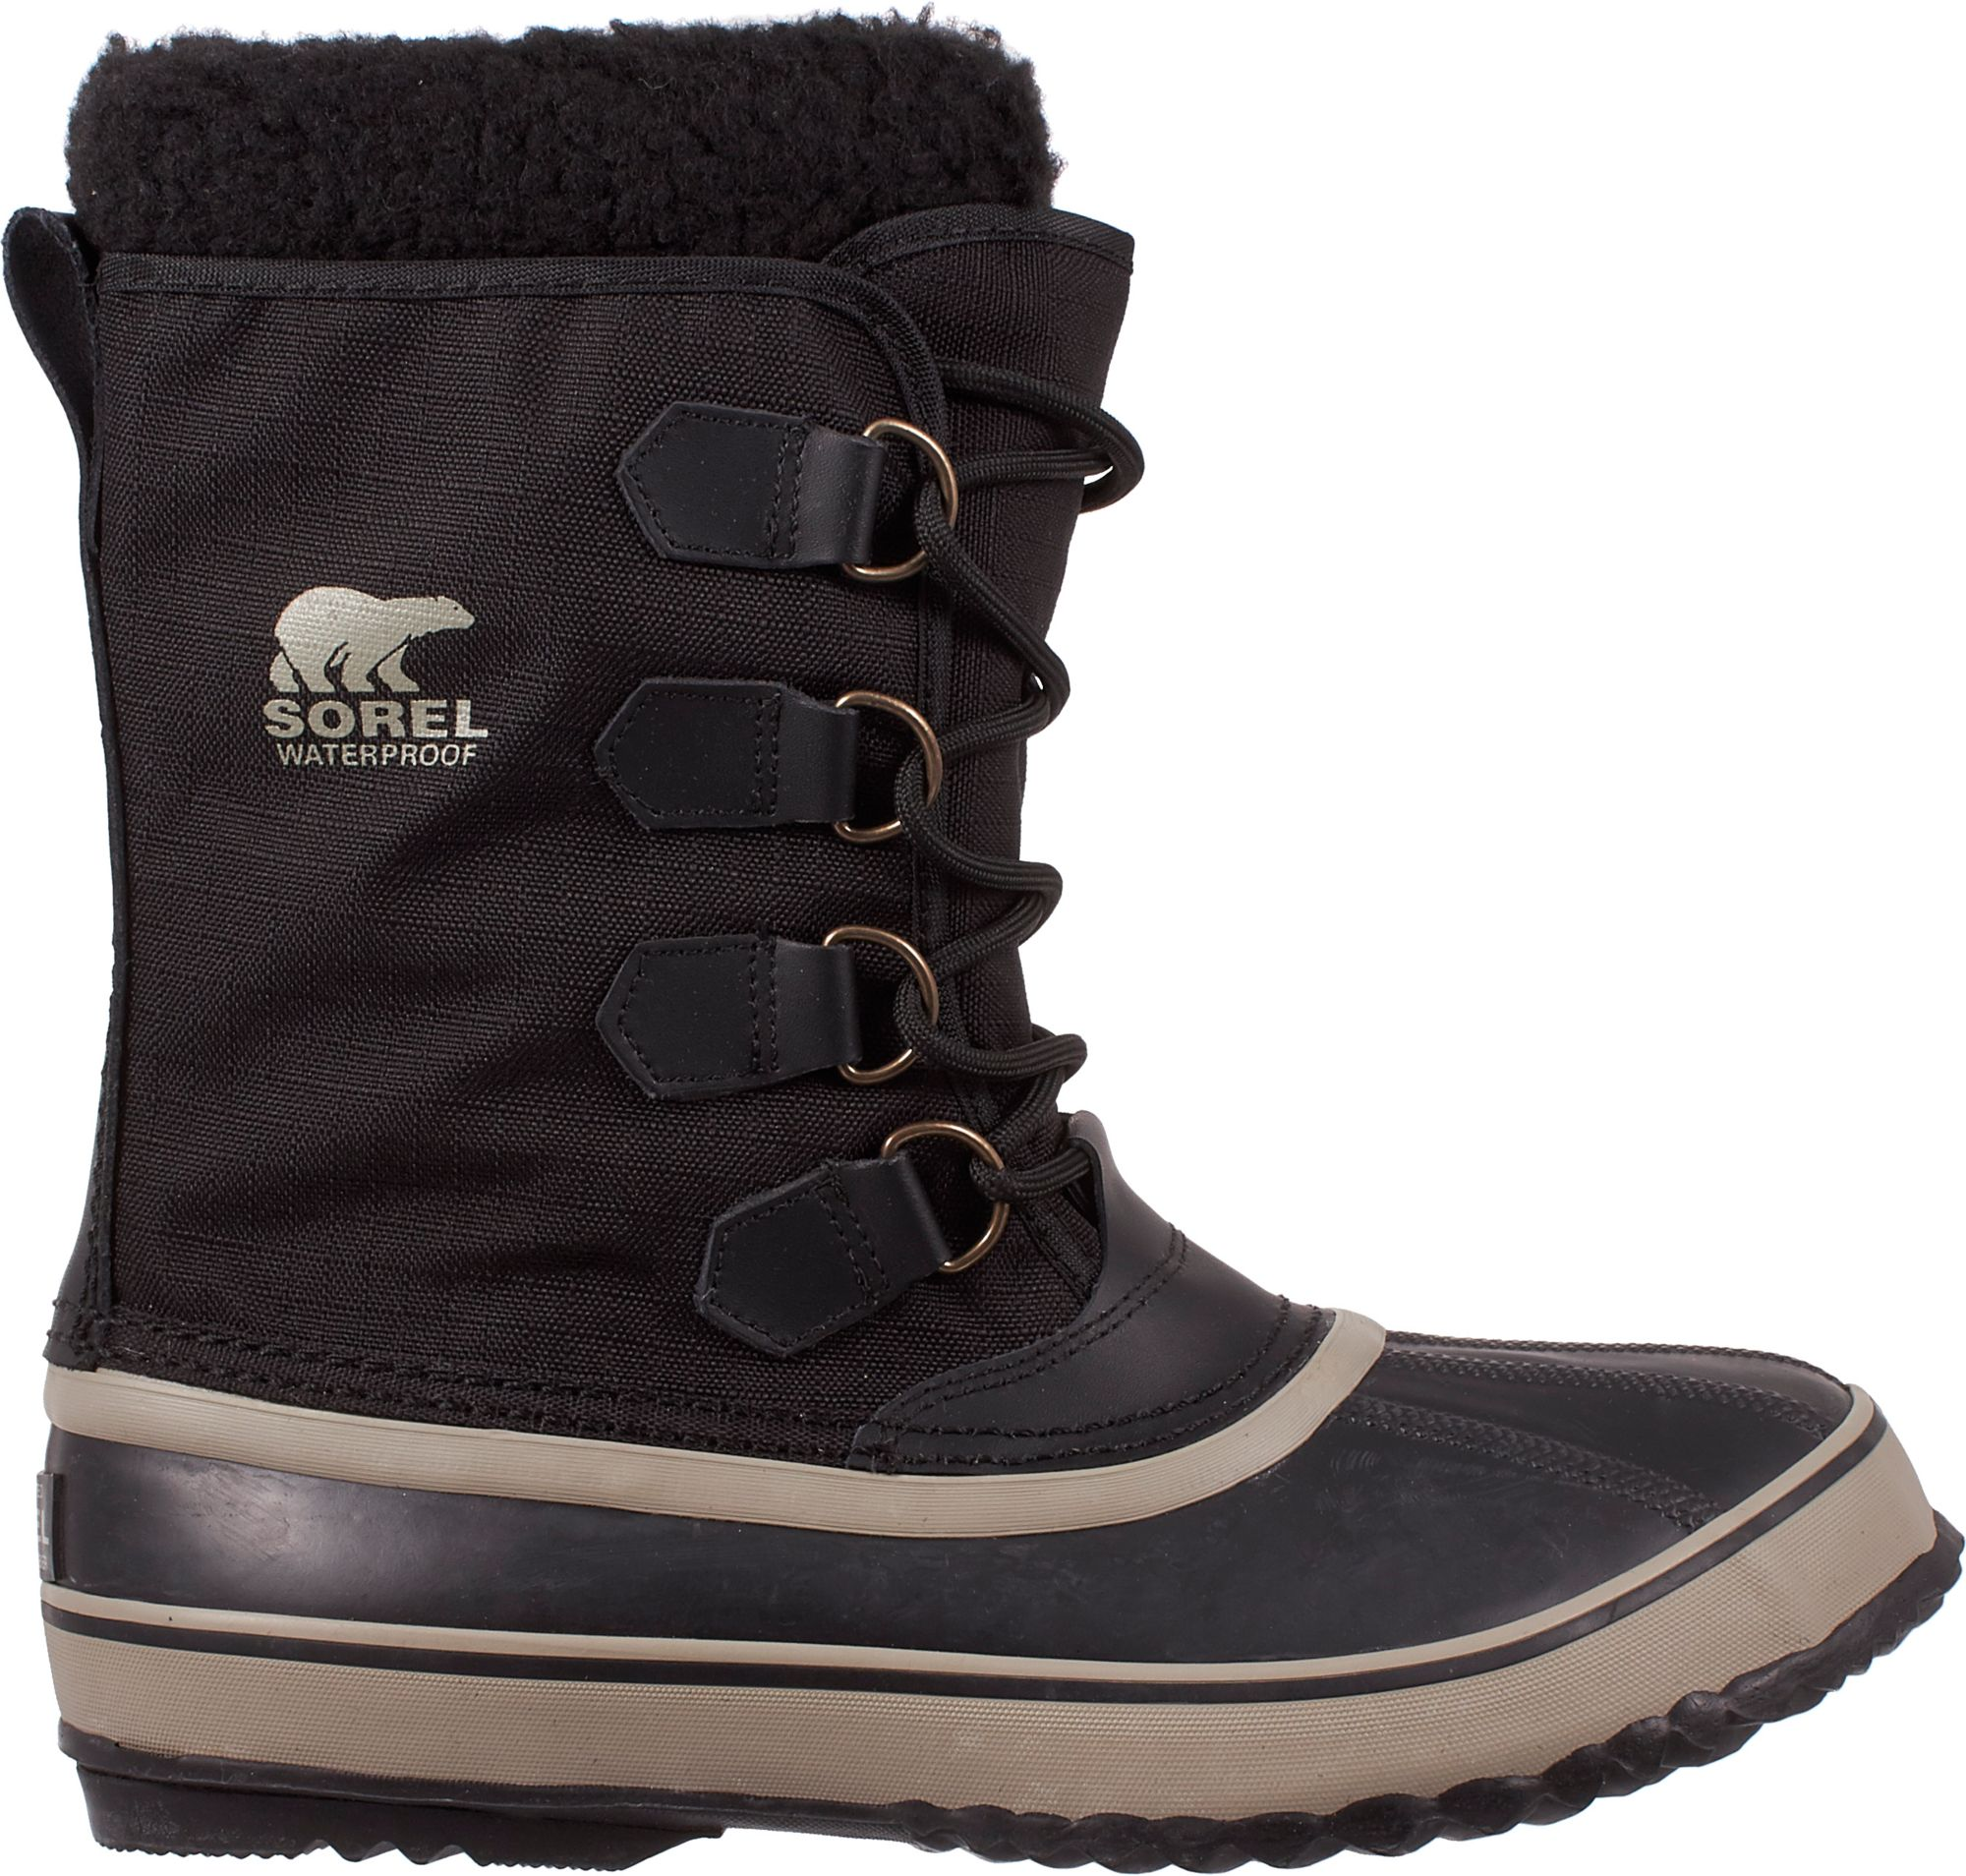 Mens Insulated Winter Boots